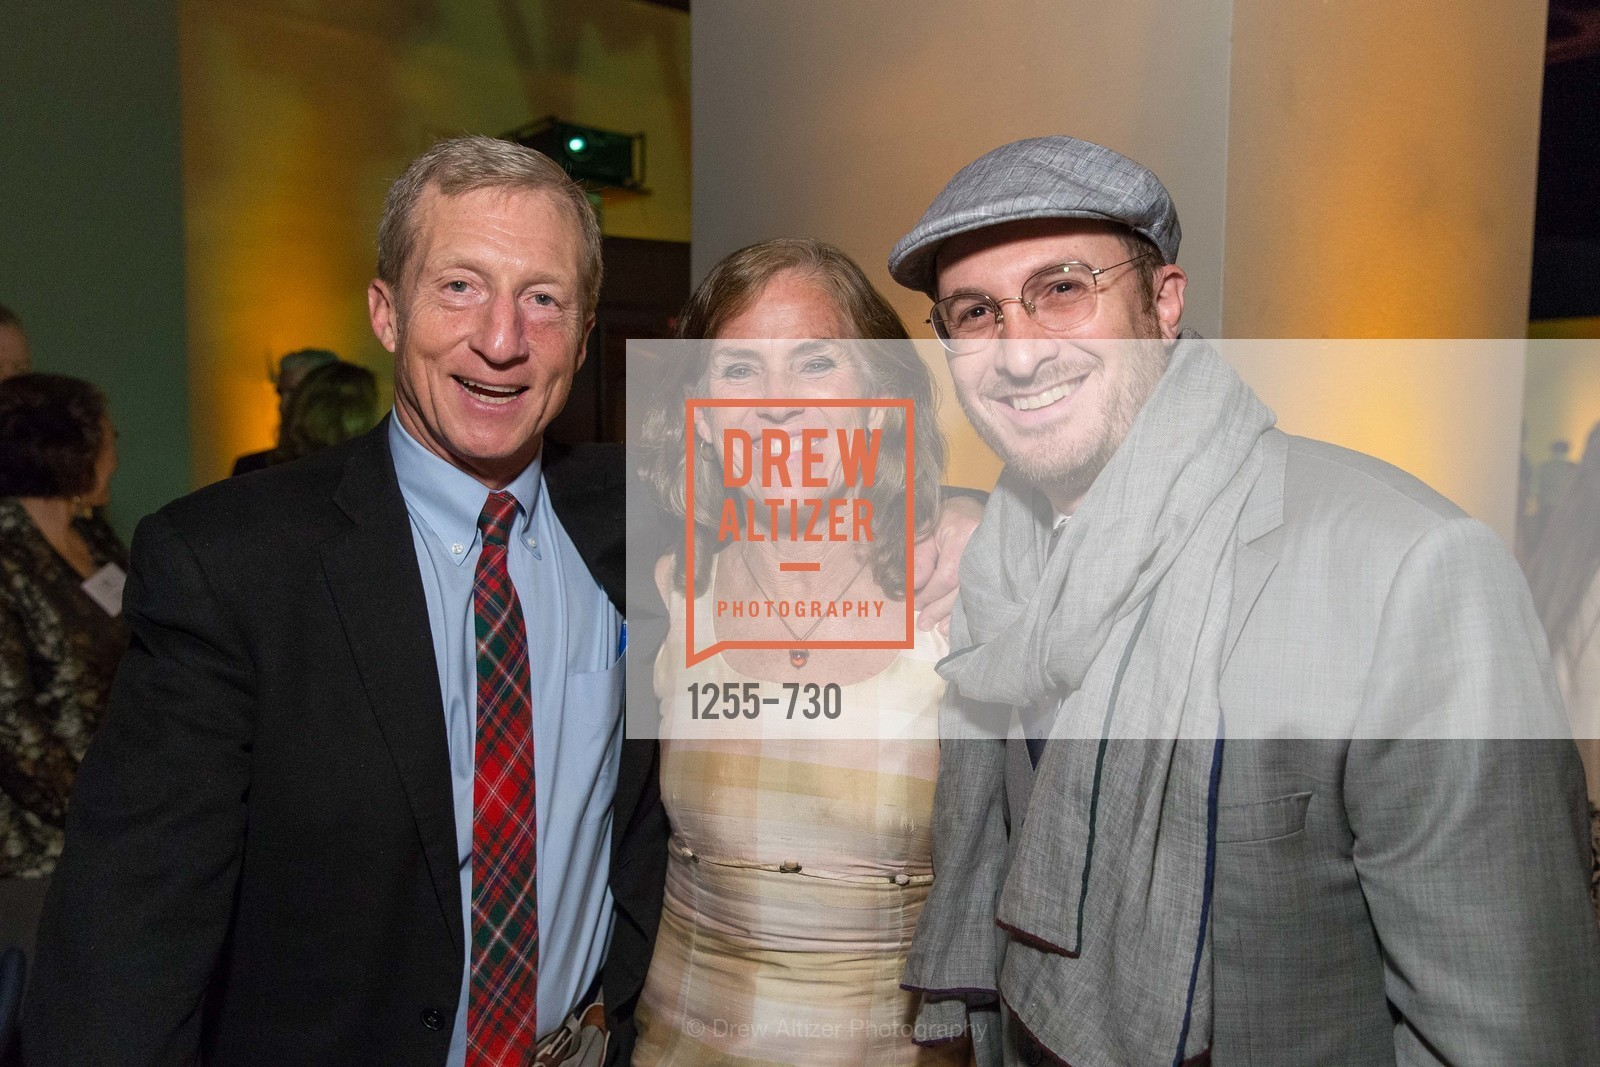 Tom Steyer, Kat Taylor, Darren Aronofsky, 2015 SIERRA CLUB Trail Blazers Ball, US, May 14th, 2015,Drew Altizer, Drew Altizer Photography, full-service agency, private events, San Francisco photographer, photographer california